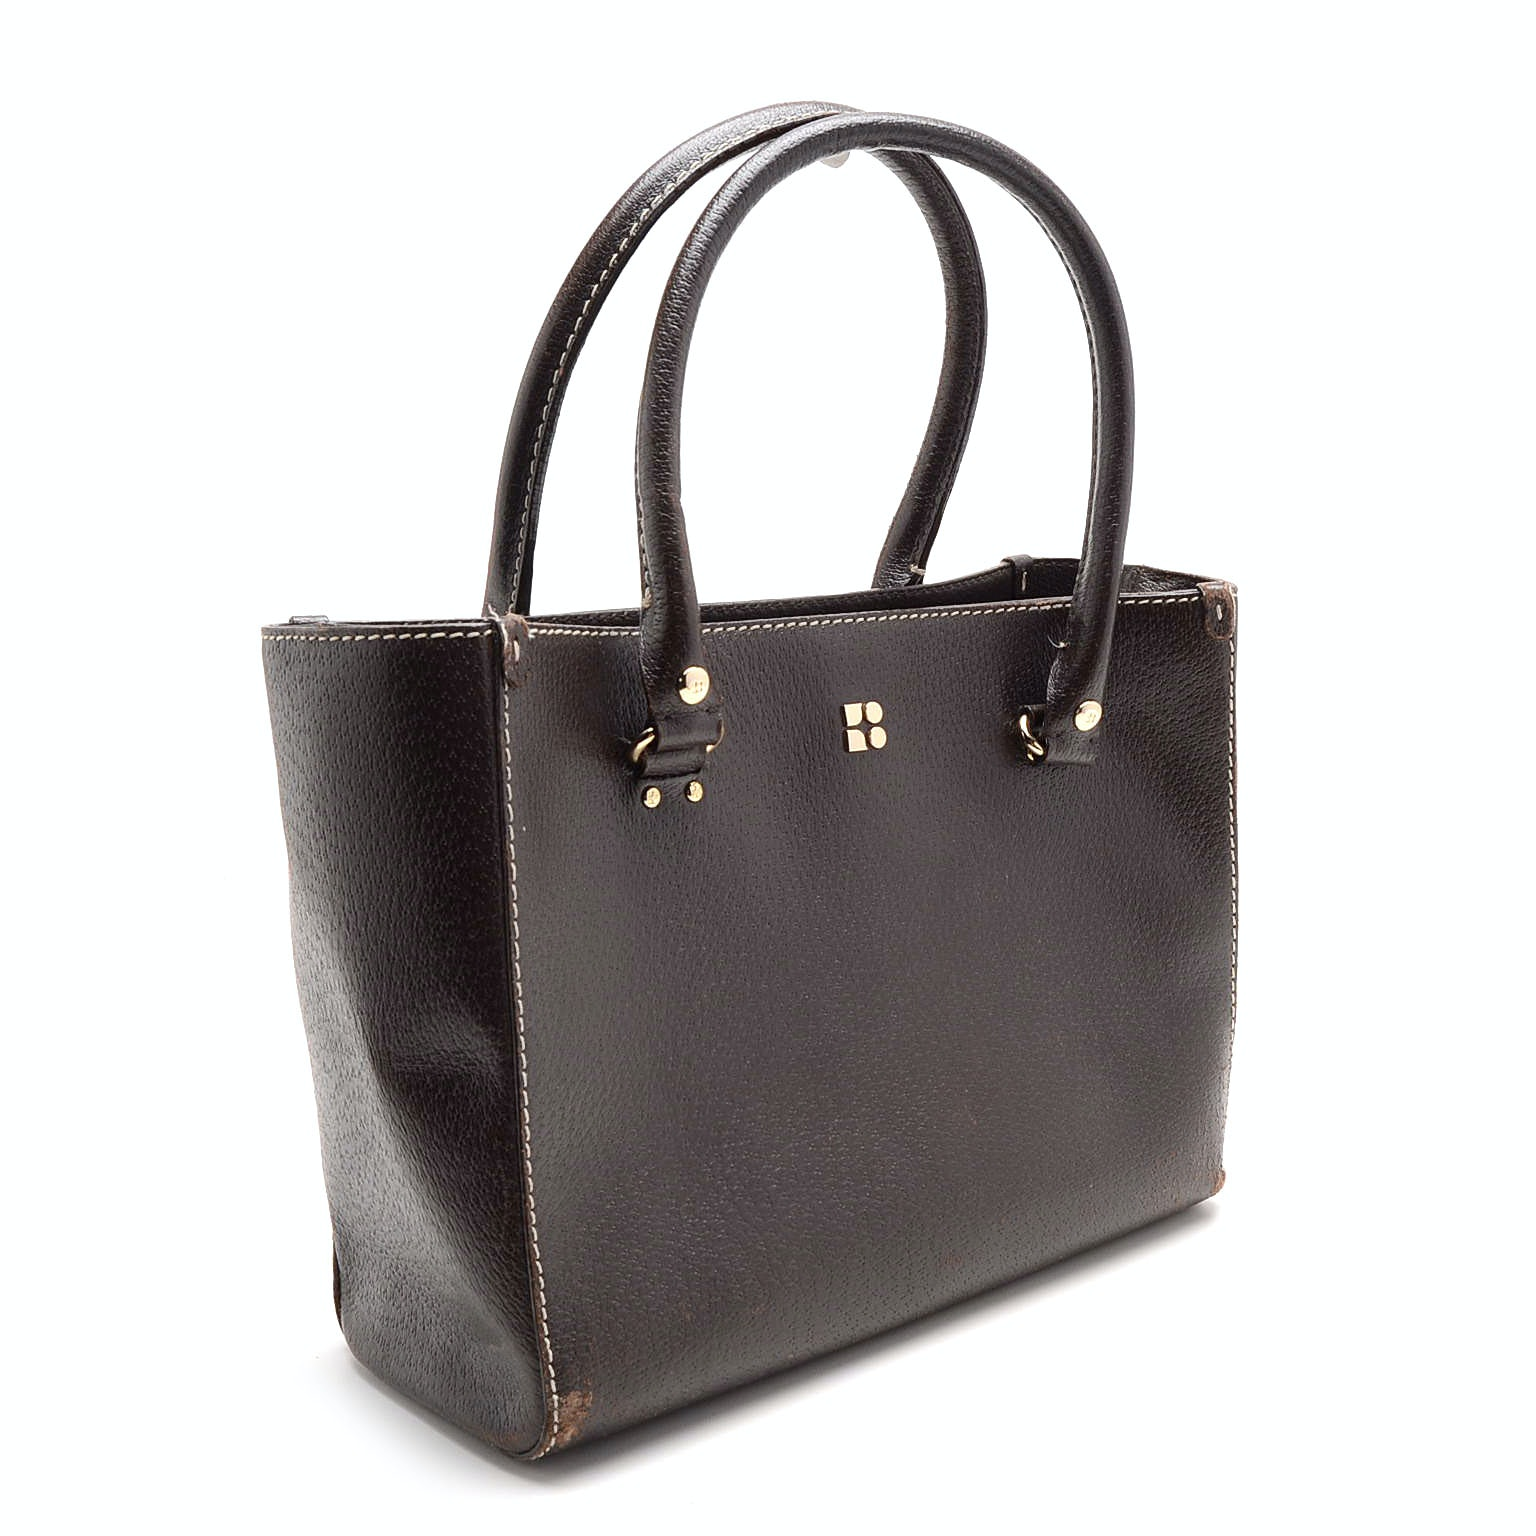 Kate Spade Brown Leather Satchel